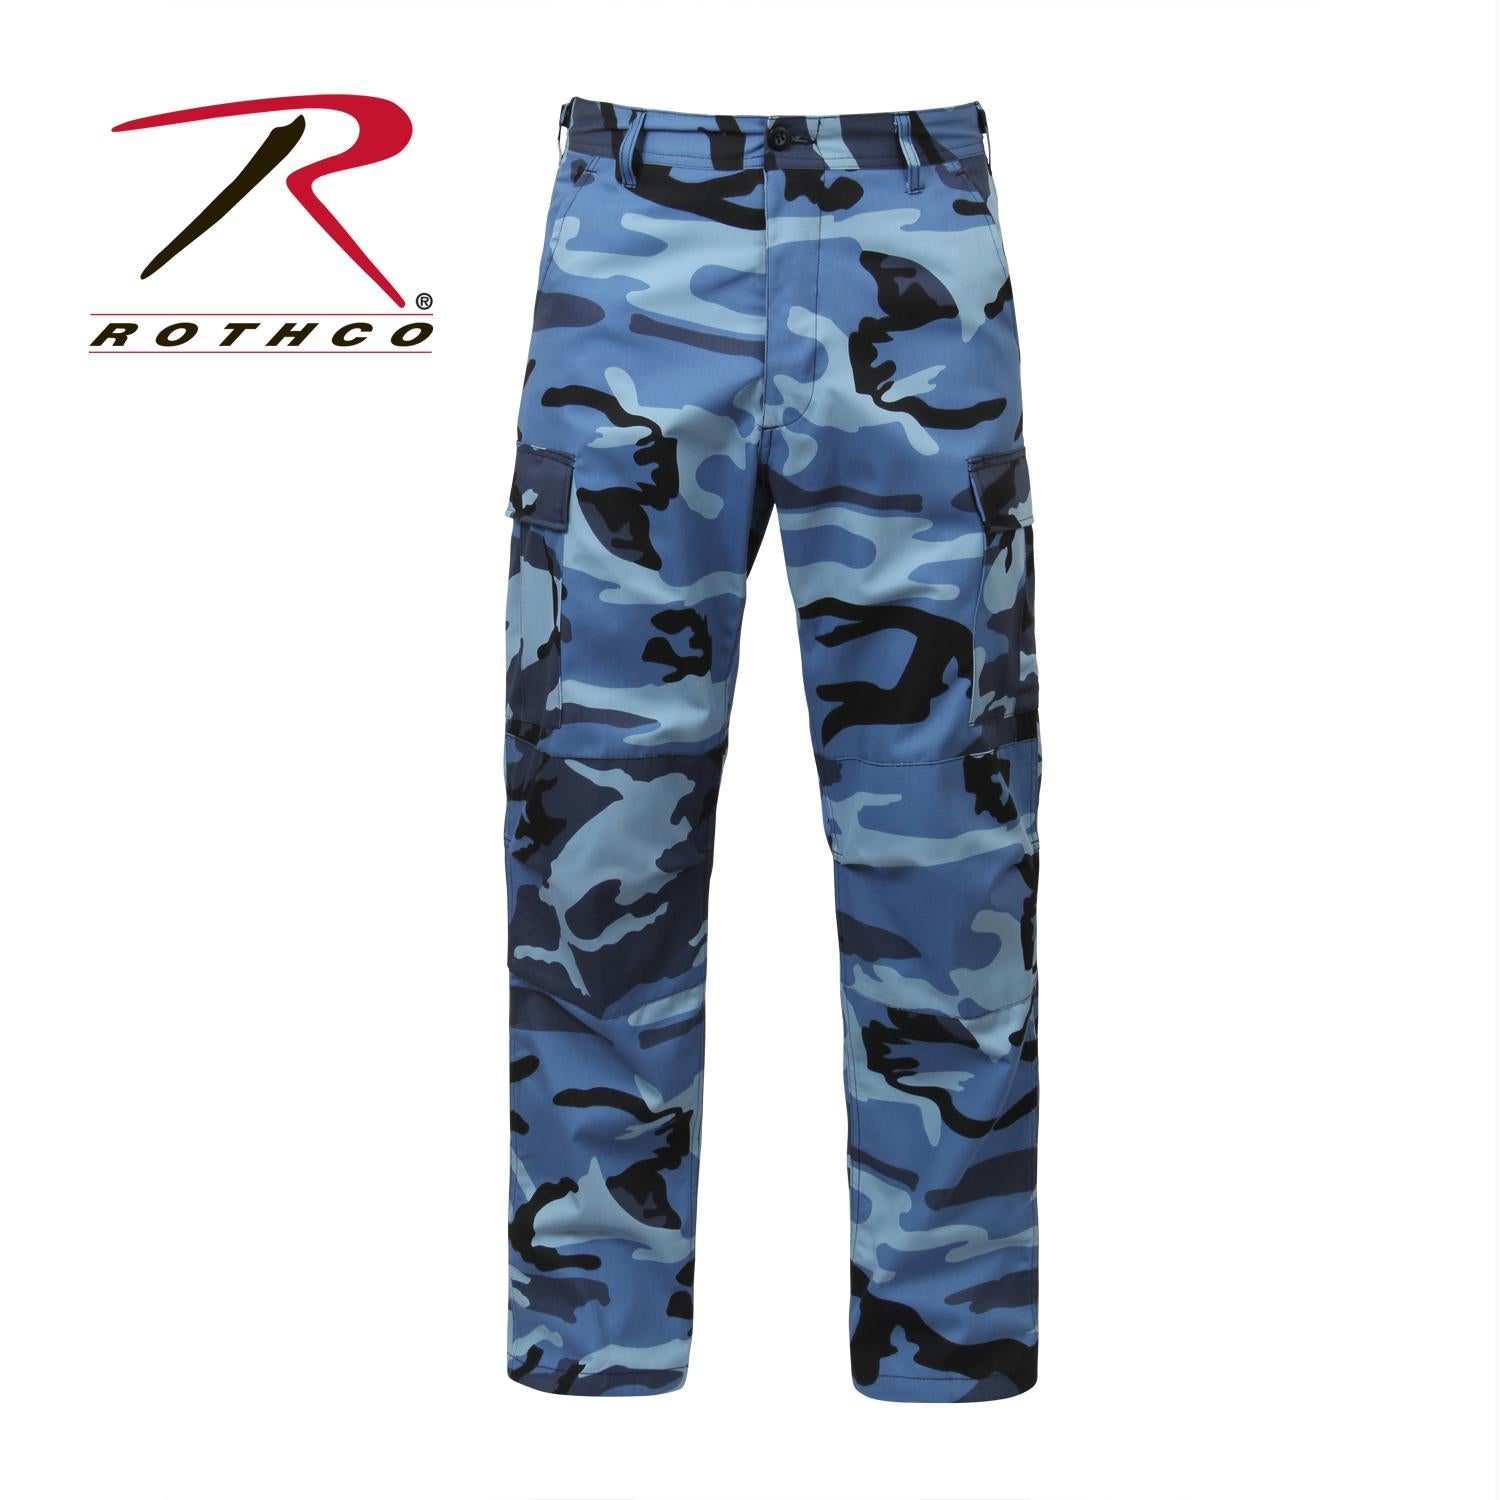 Rothco Color Camo Tactical BDU Pant - Sky Blue Camo / 3XL